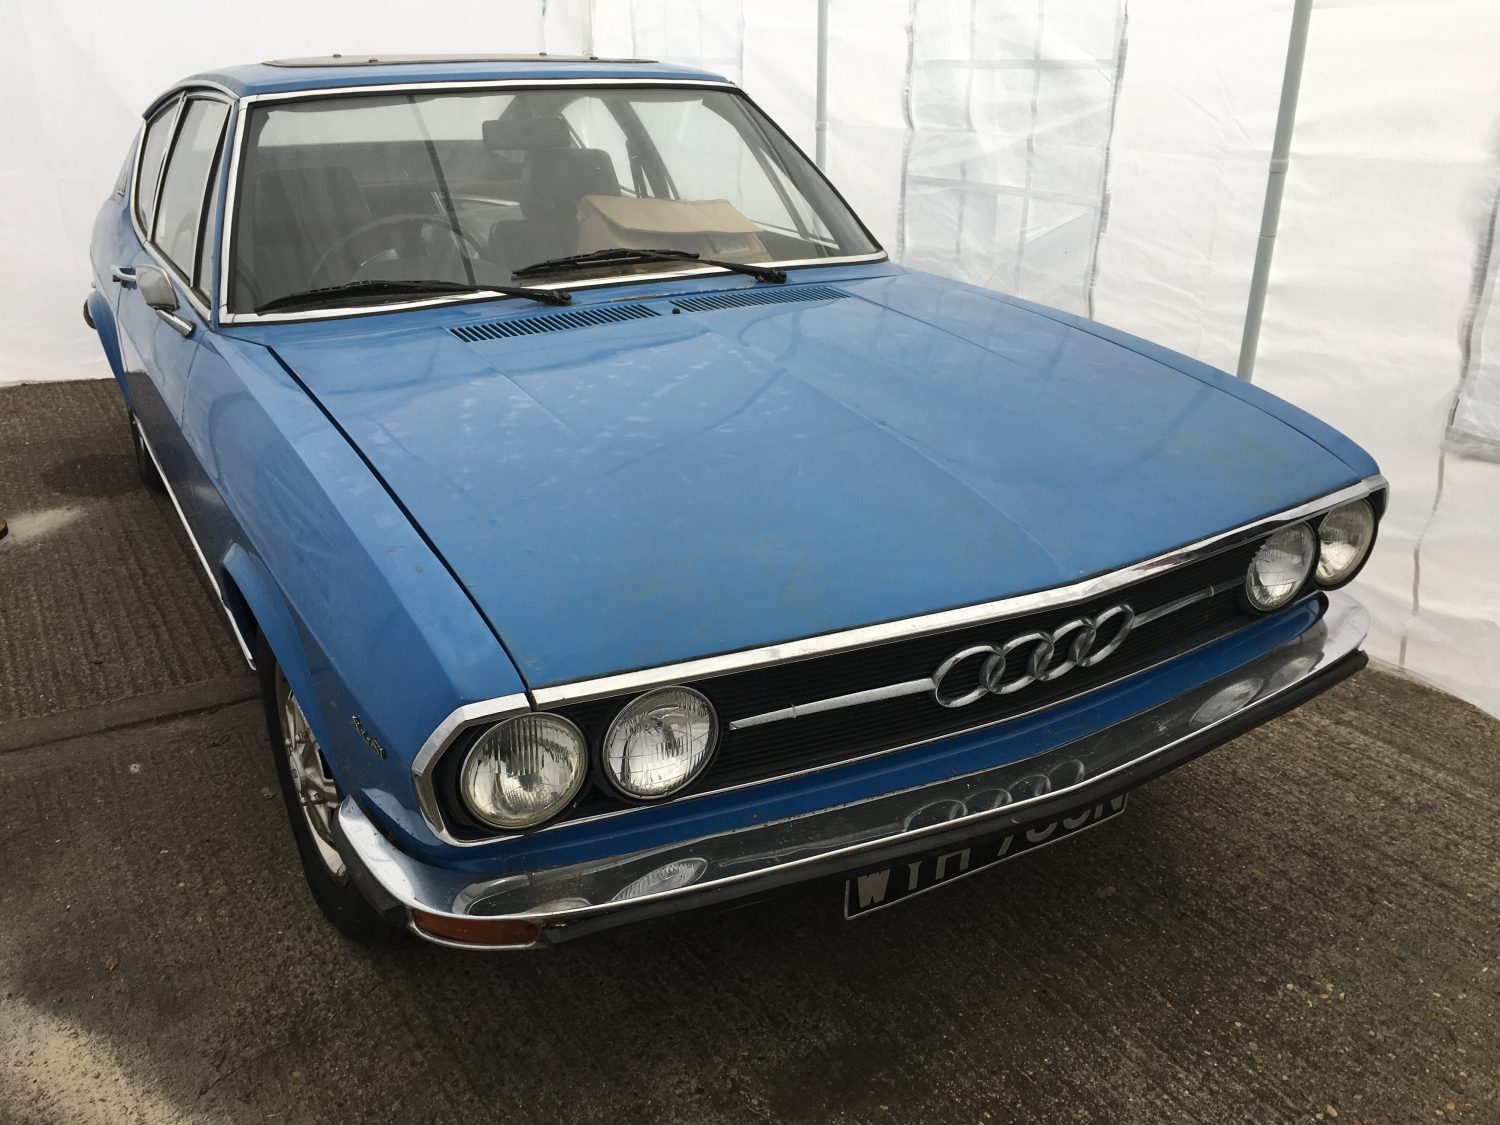 1974 Audi 100 Coupe S in for full restoration